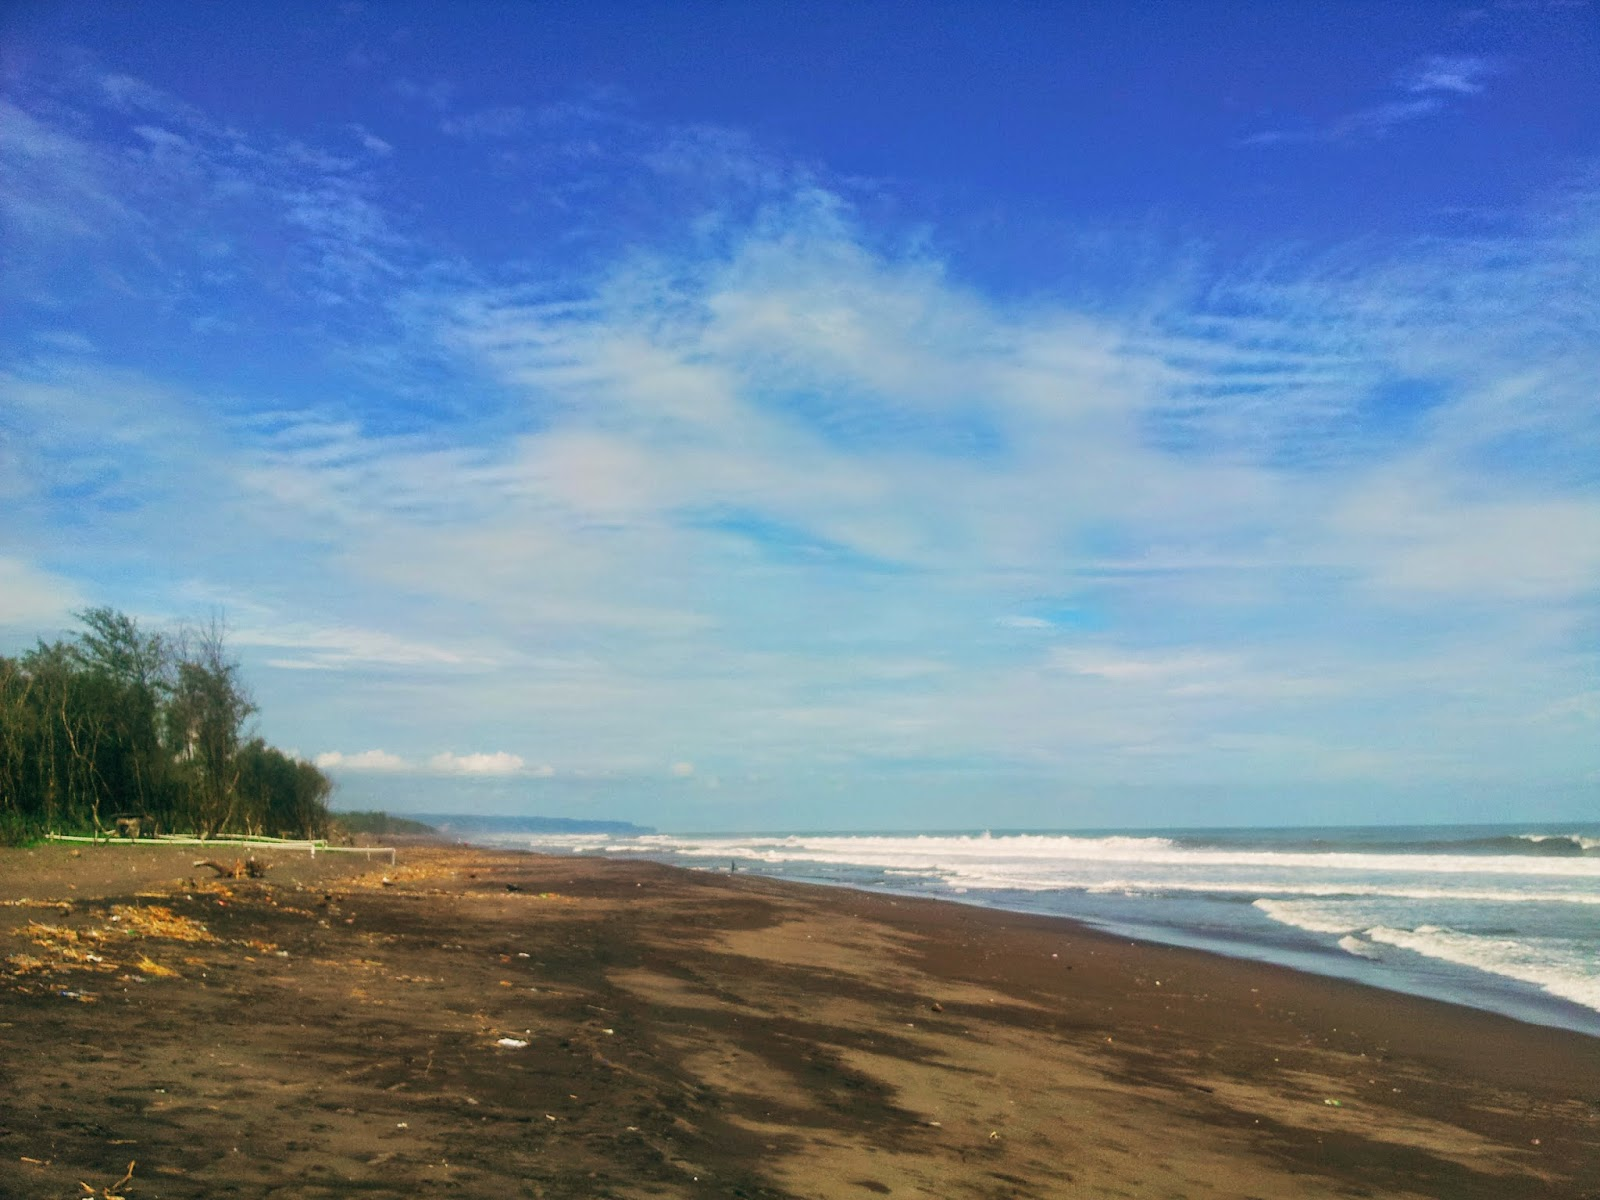 Kwaru beach in Jogja